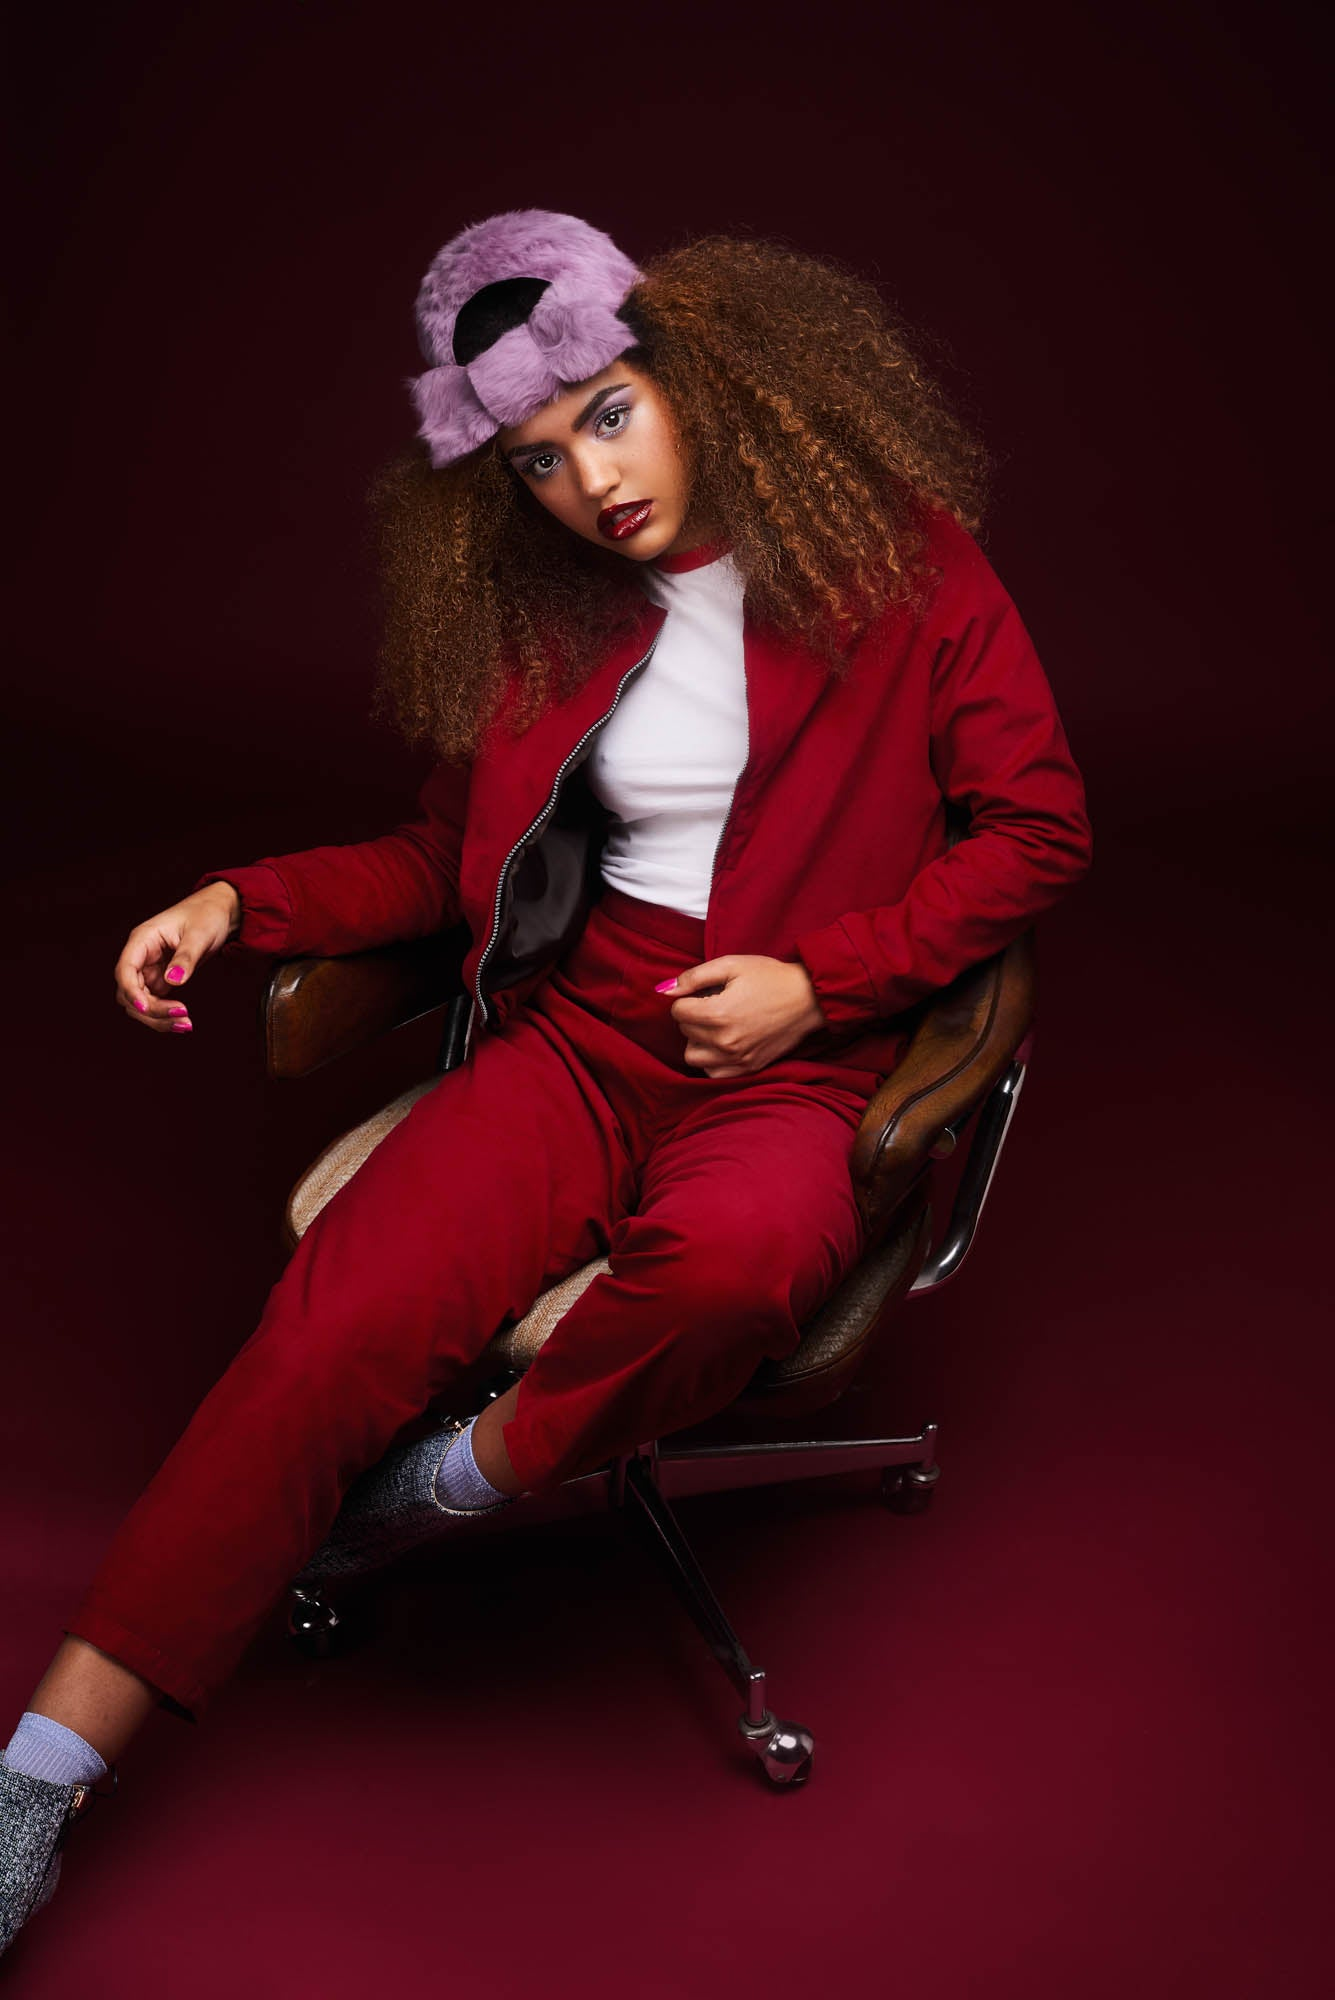 The natural hair model wears a red suit with the purple furfelt knot hat